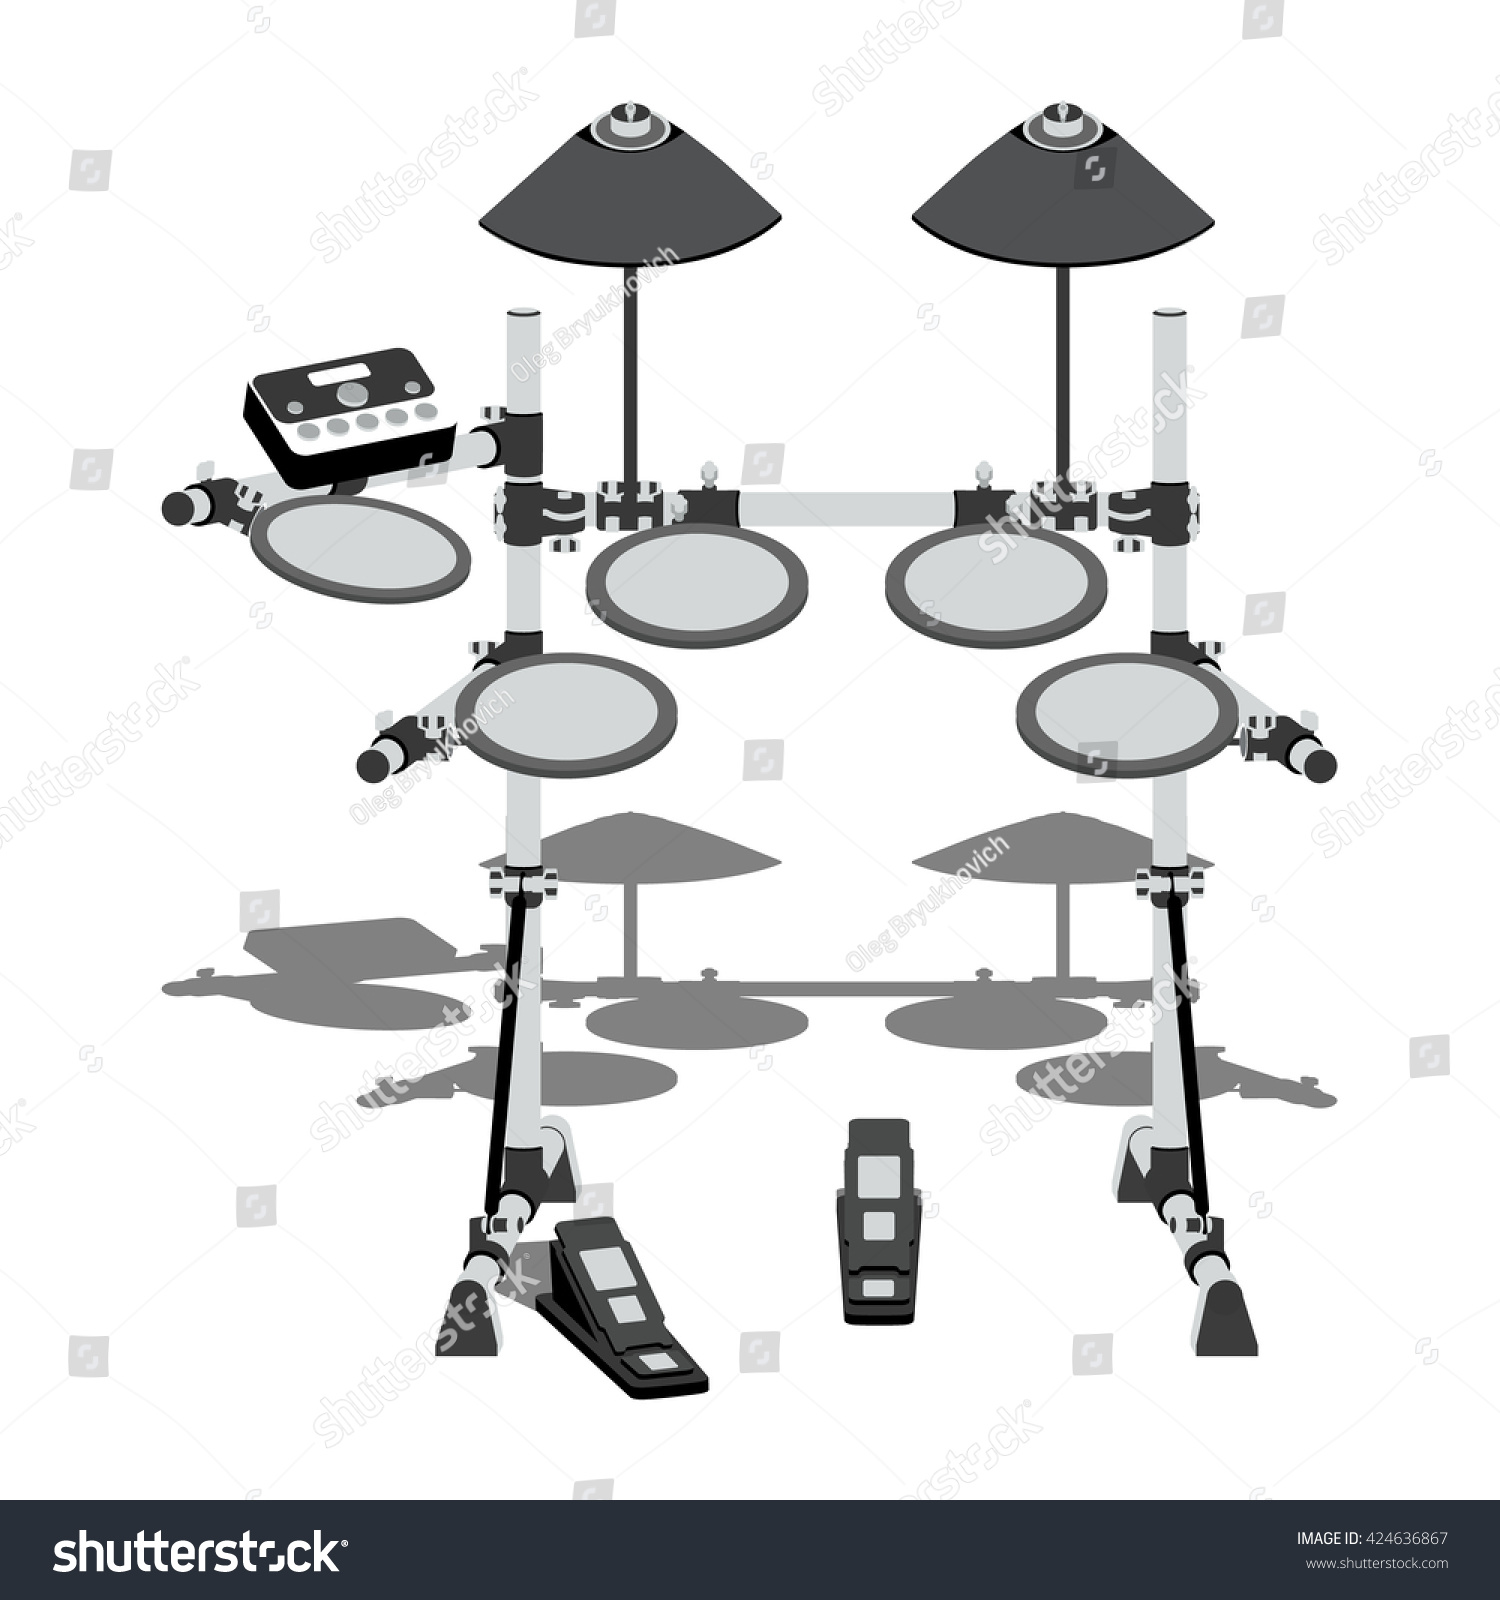 Illustration Electric Drum Kit Controller Pedals Stock Vector